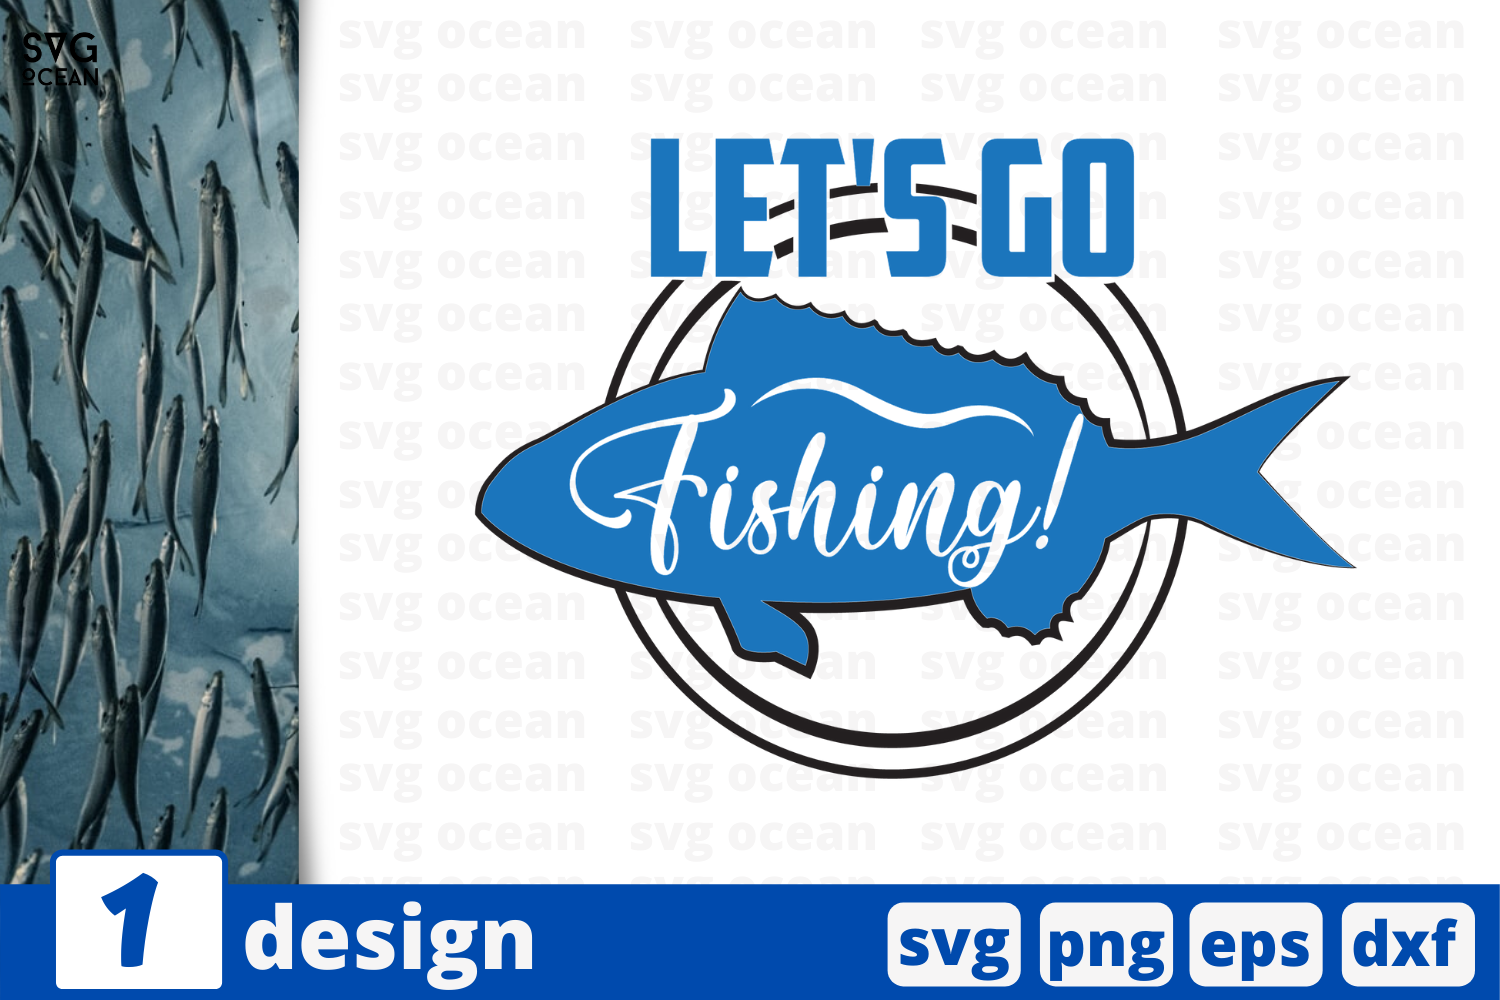 Let S Go Fishing Graphic By Svgocean Creative Fabrica